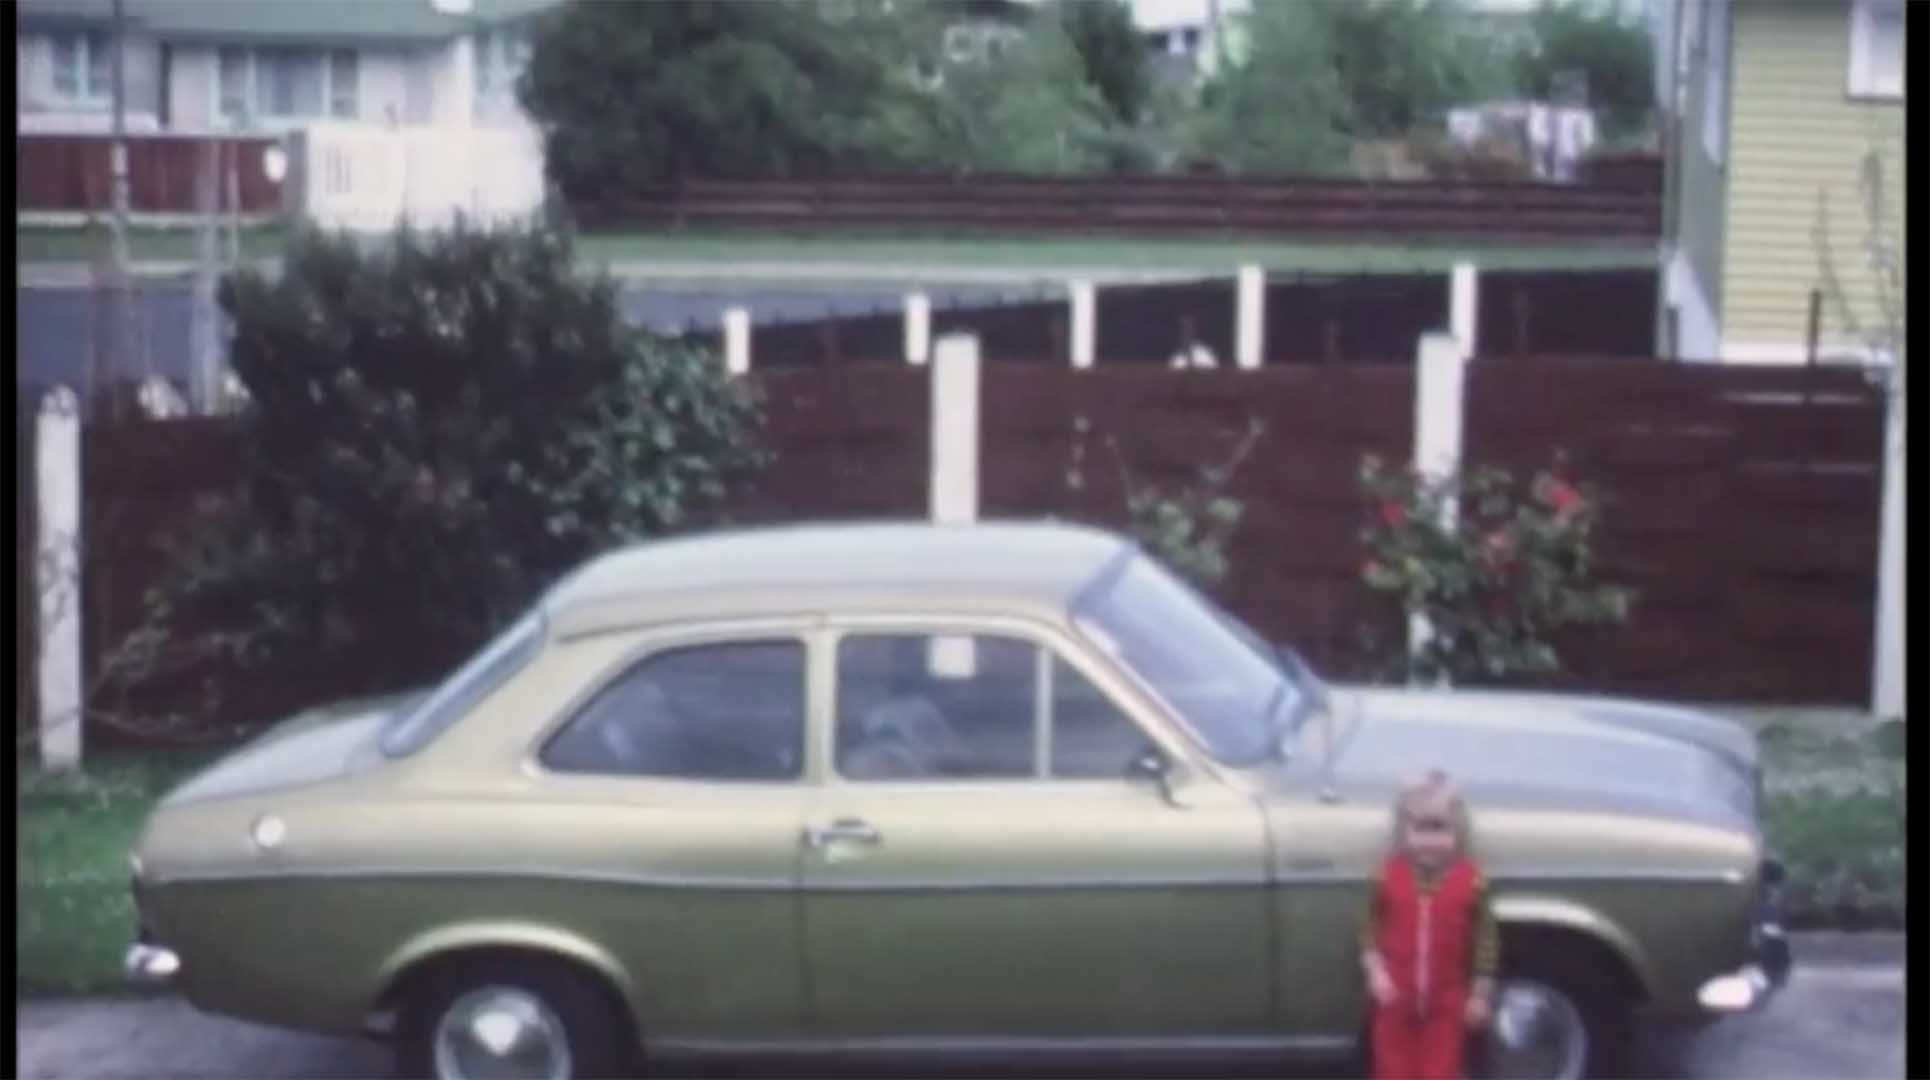 Mum would drive me to Albany every Tuesday  - (Musician to provide archive images)